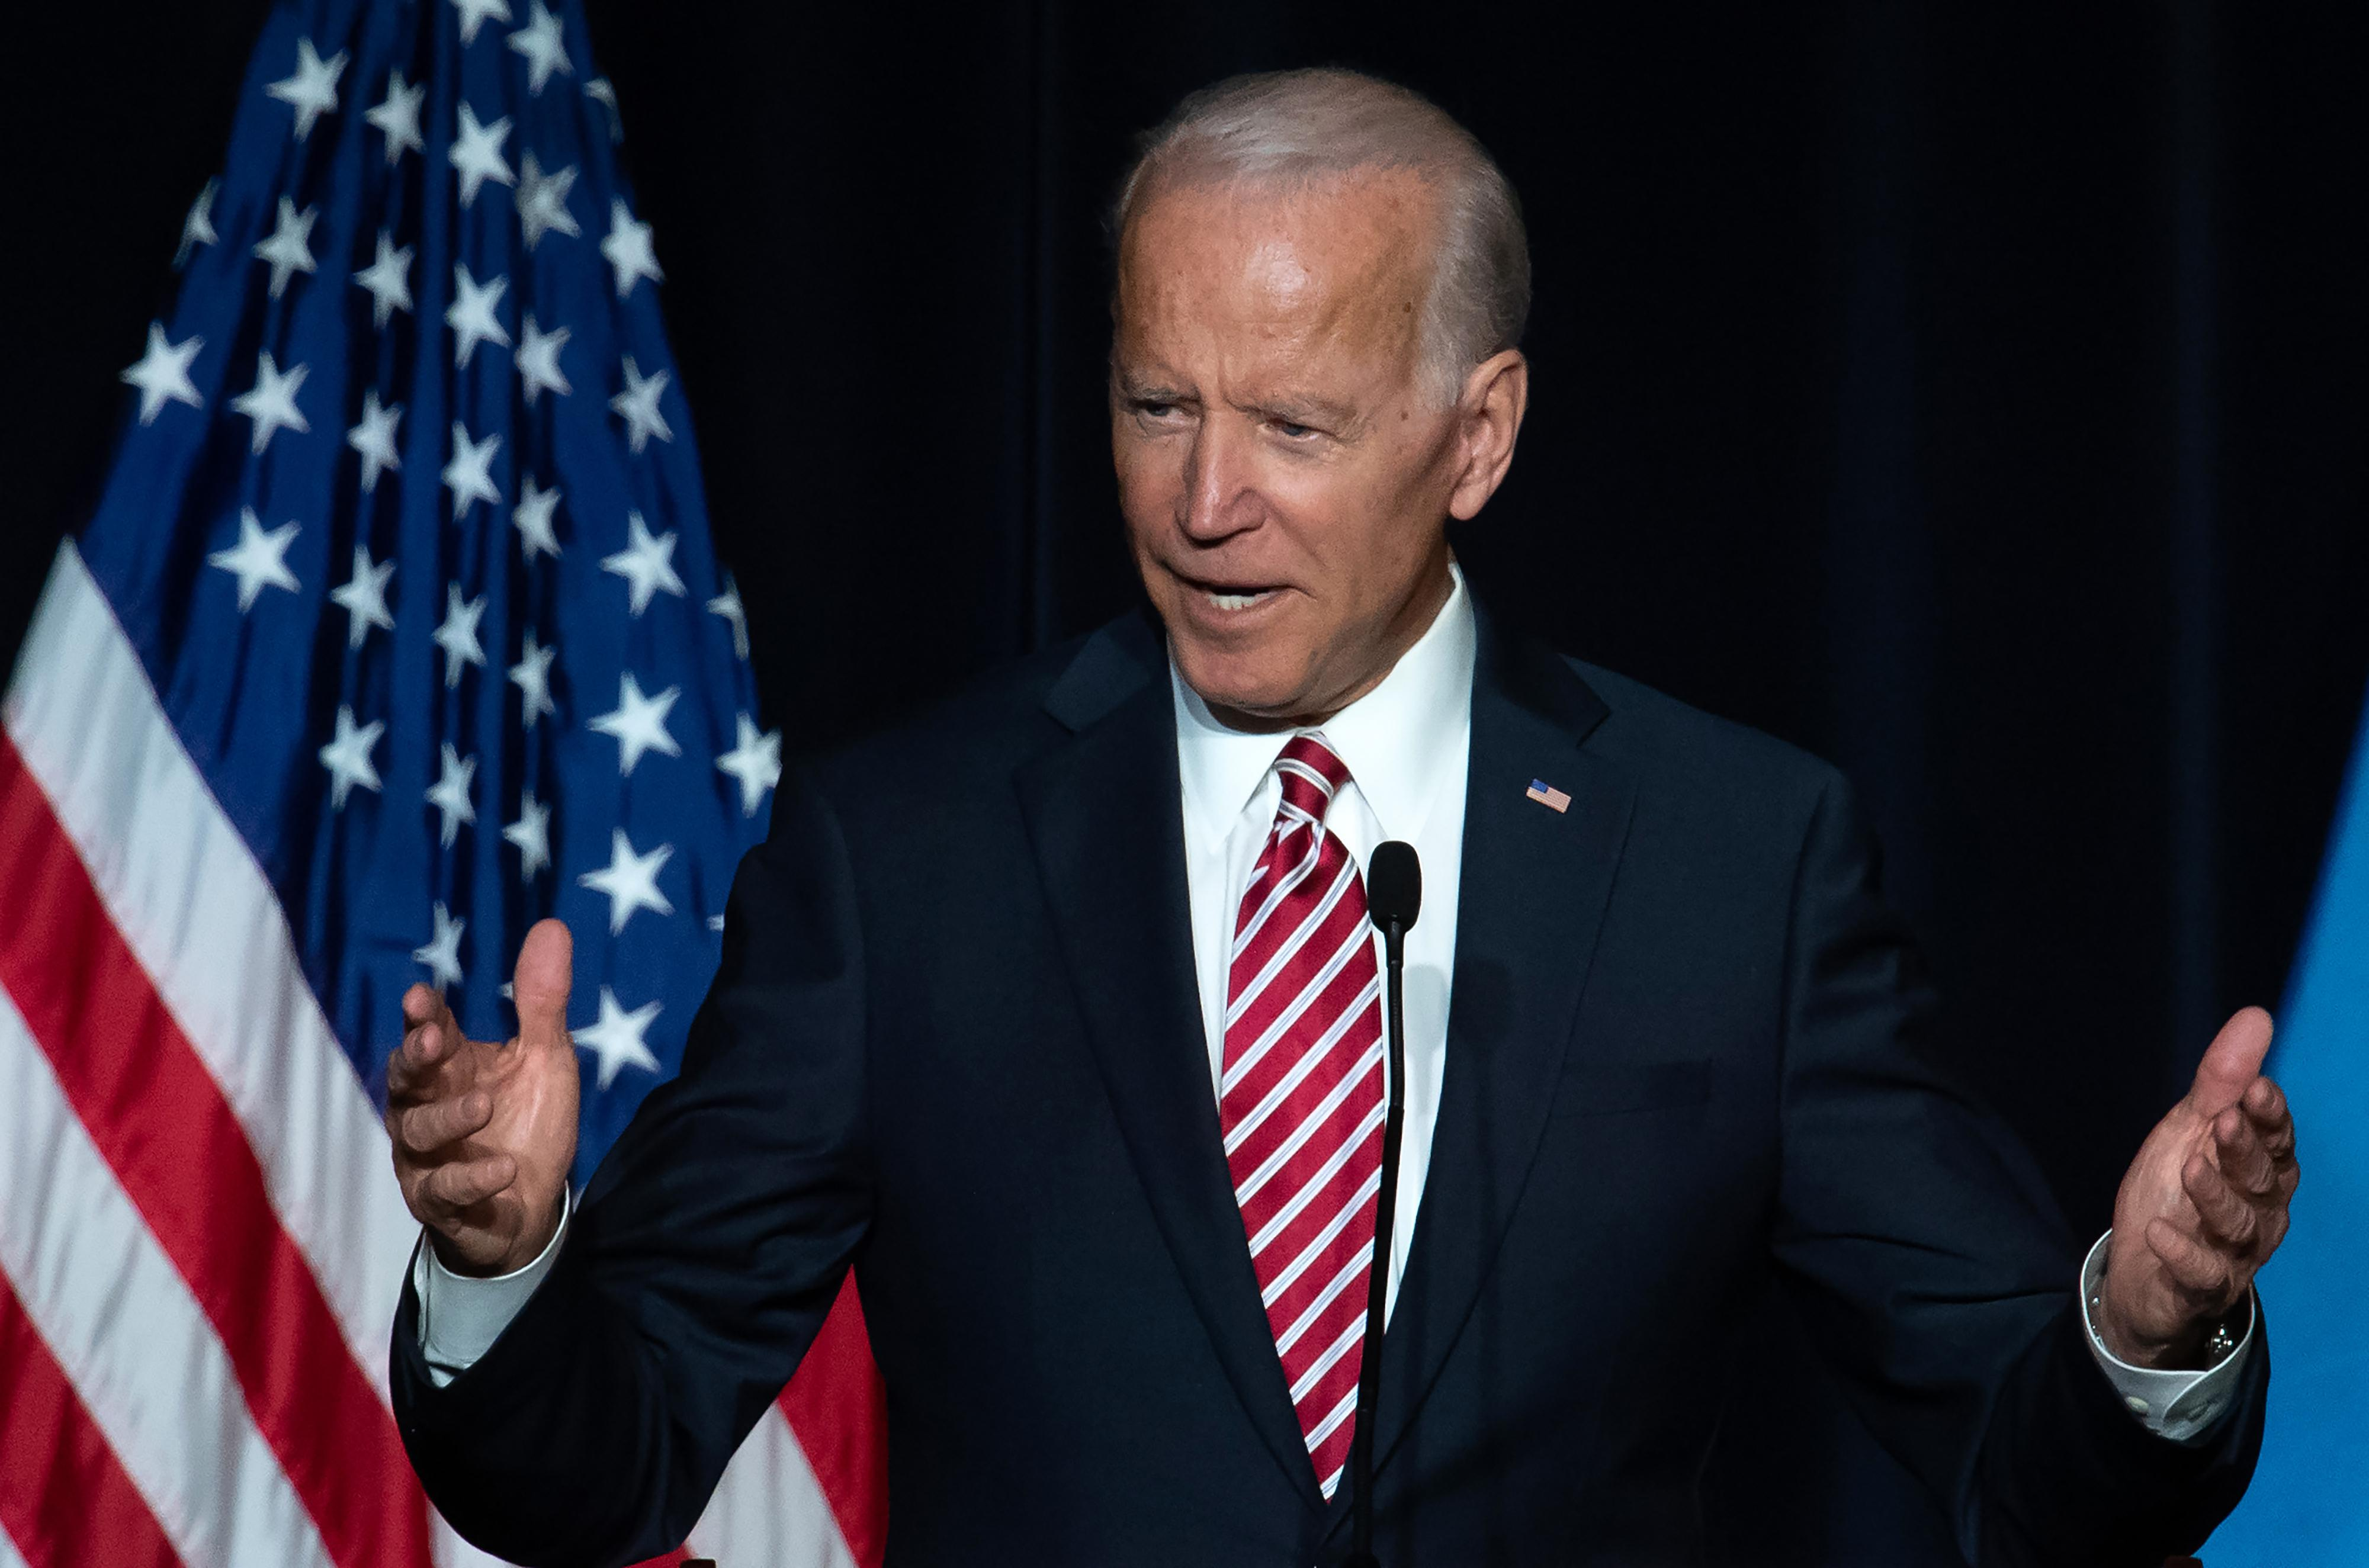 Joe Biden speaks while standing on a stage at a political event.